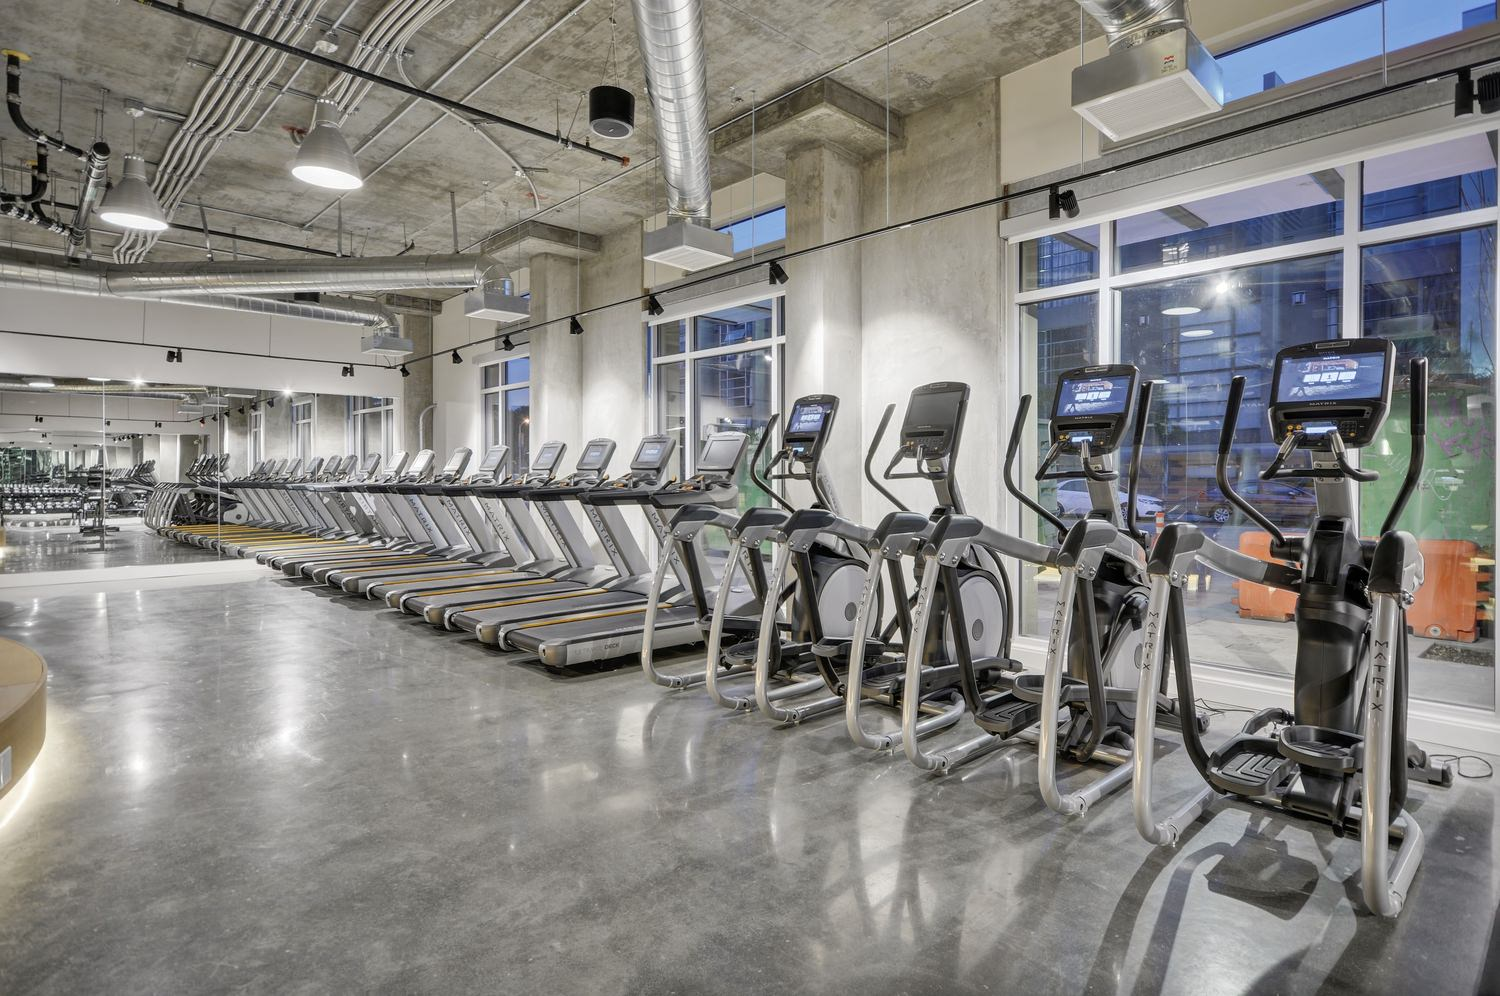 A row of several exercise bikes and treadmills line the indoor room of a gym with glass windows.